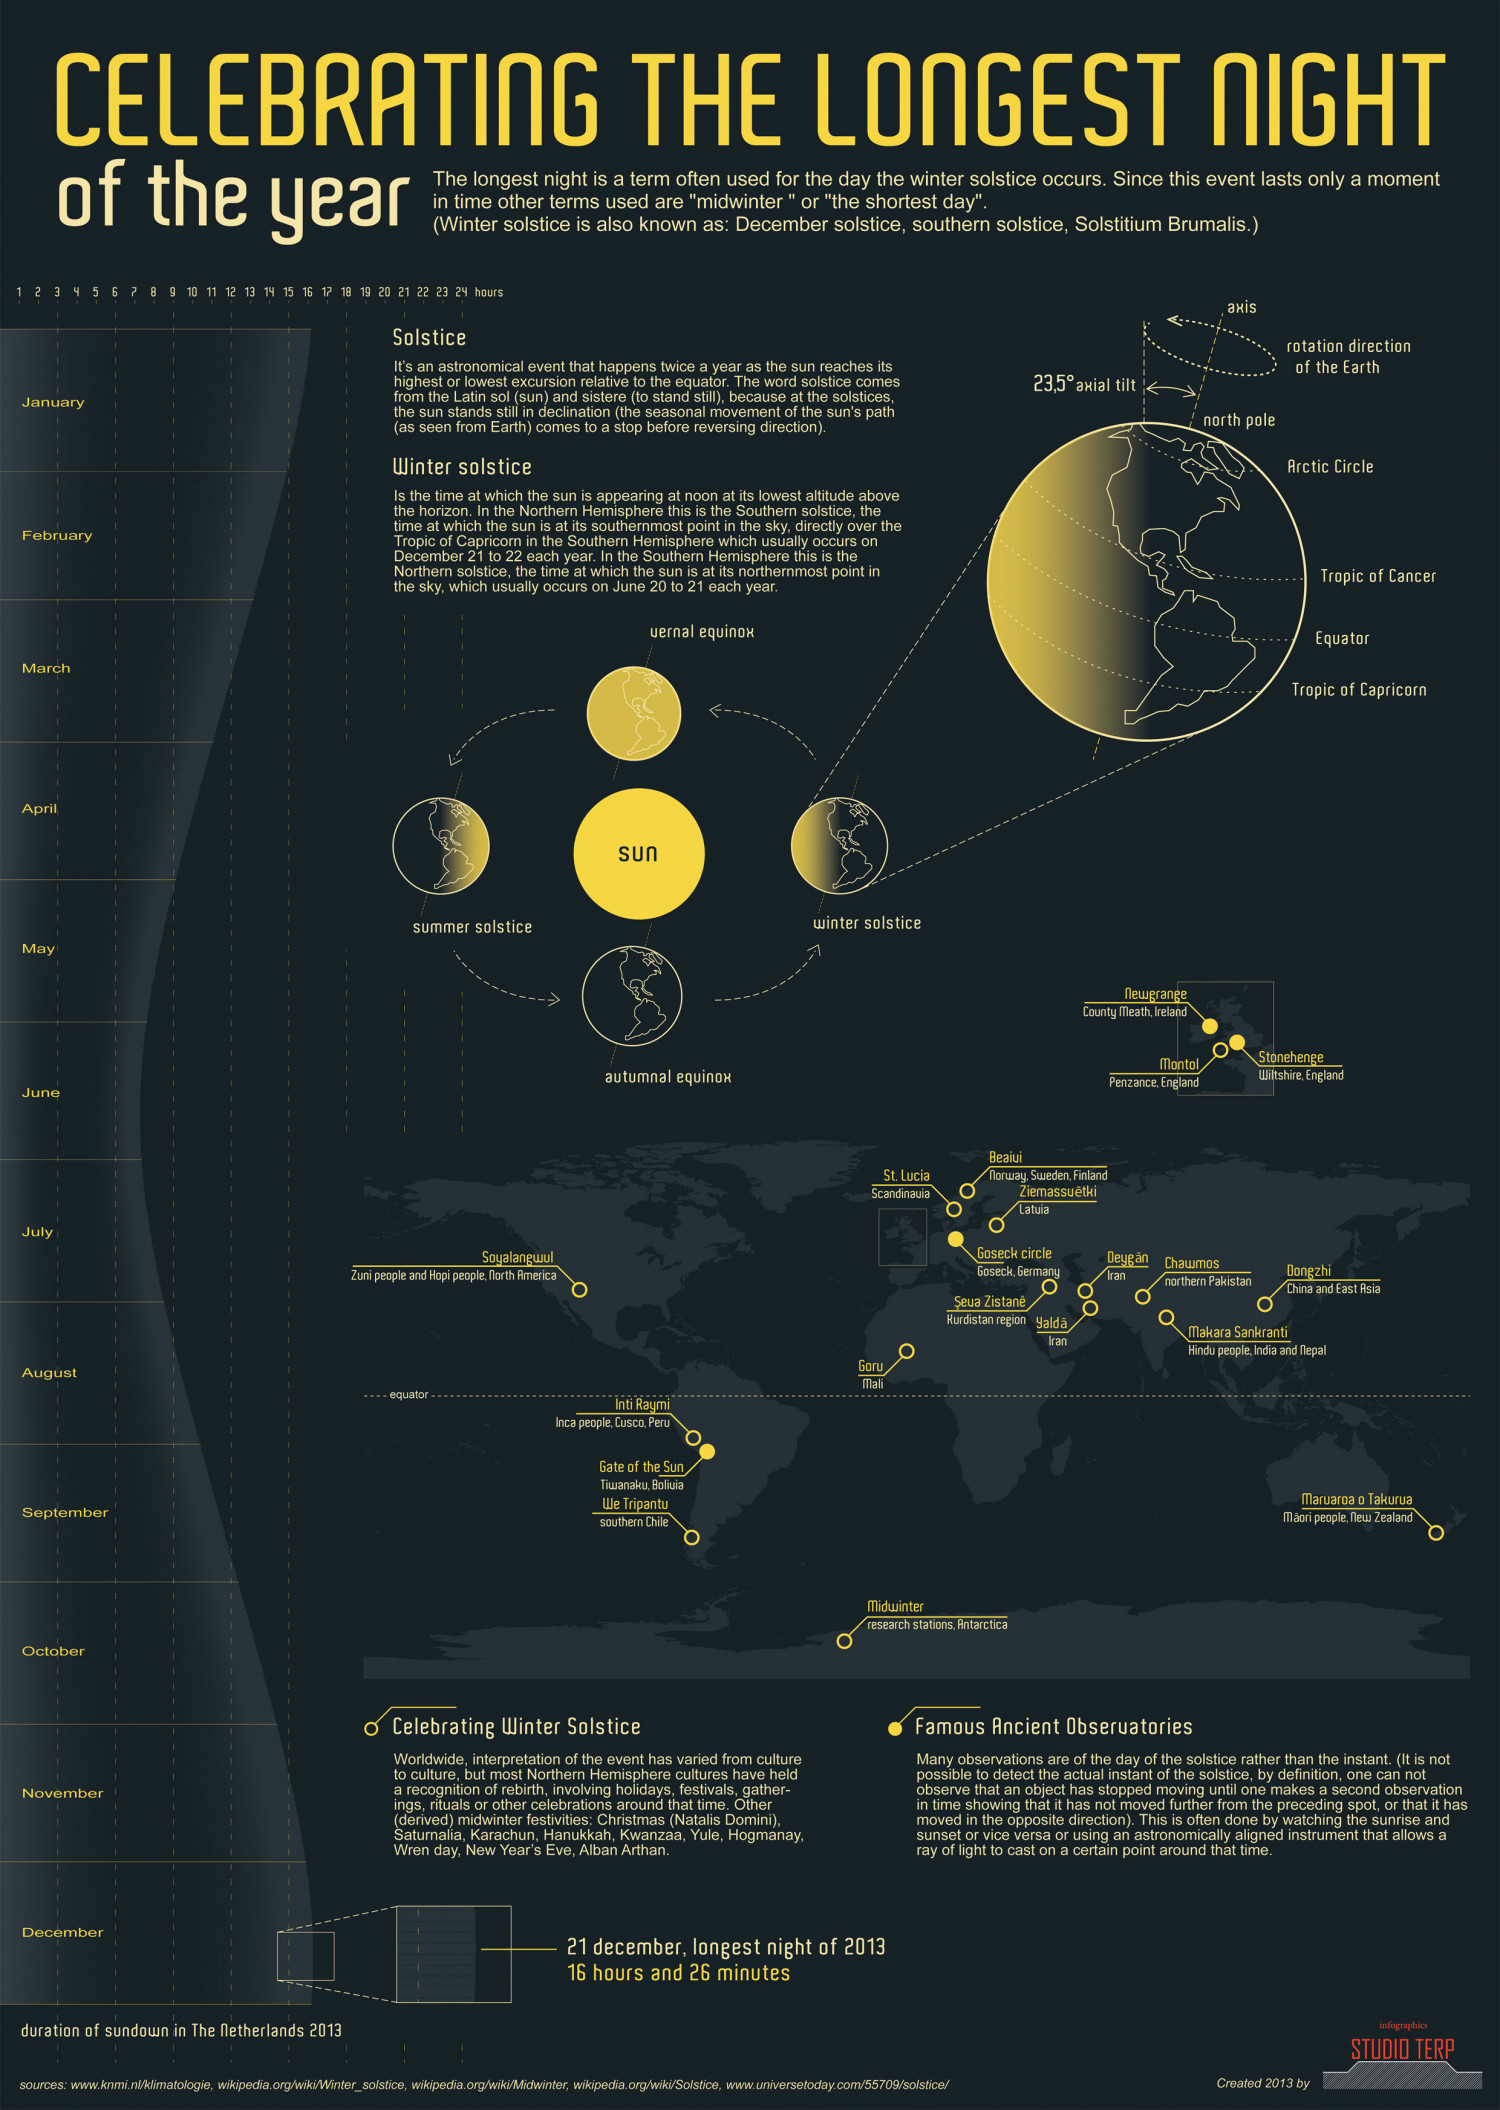 Celebrating the longest night 2013 Infographic